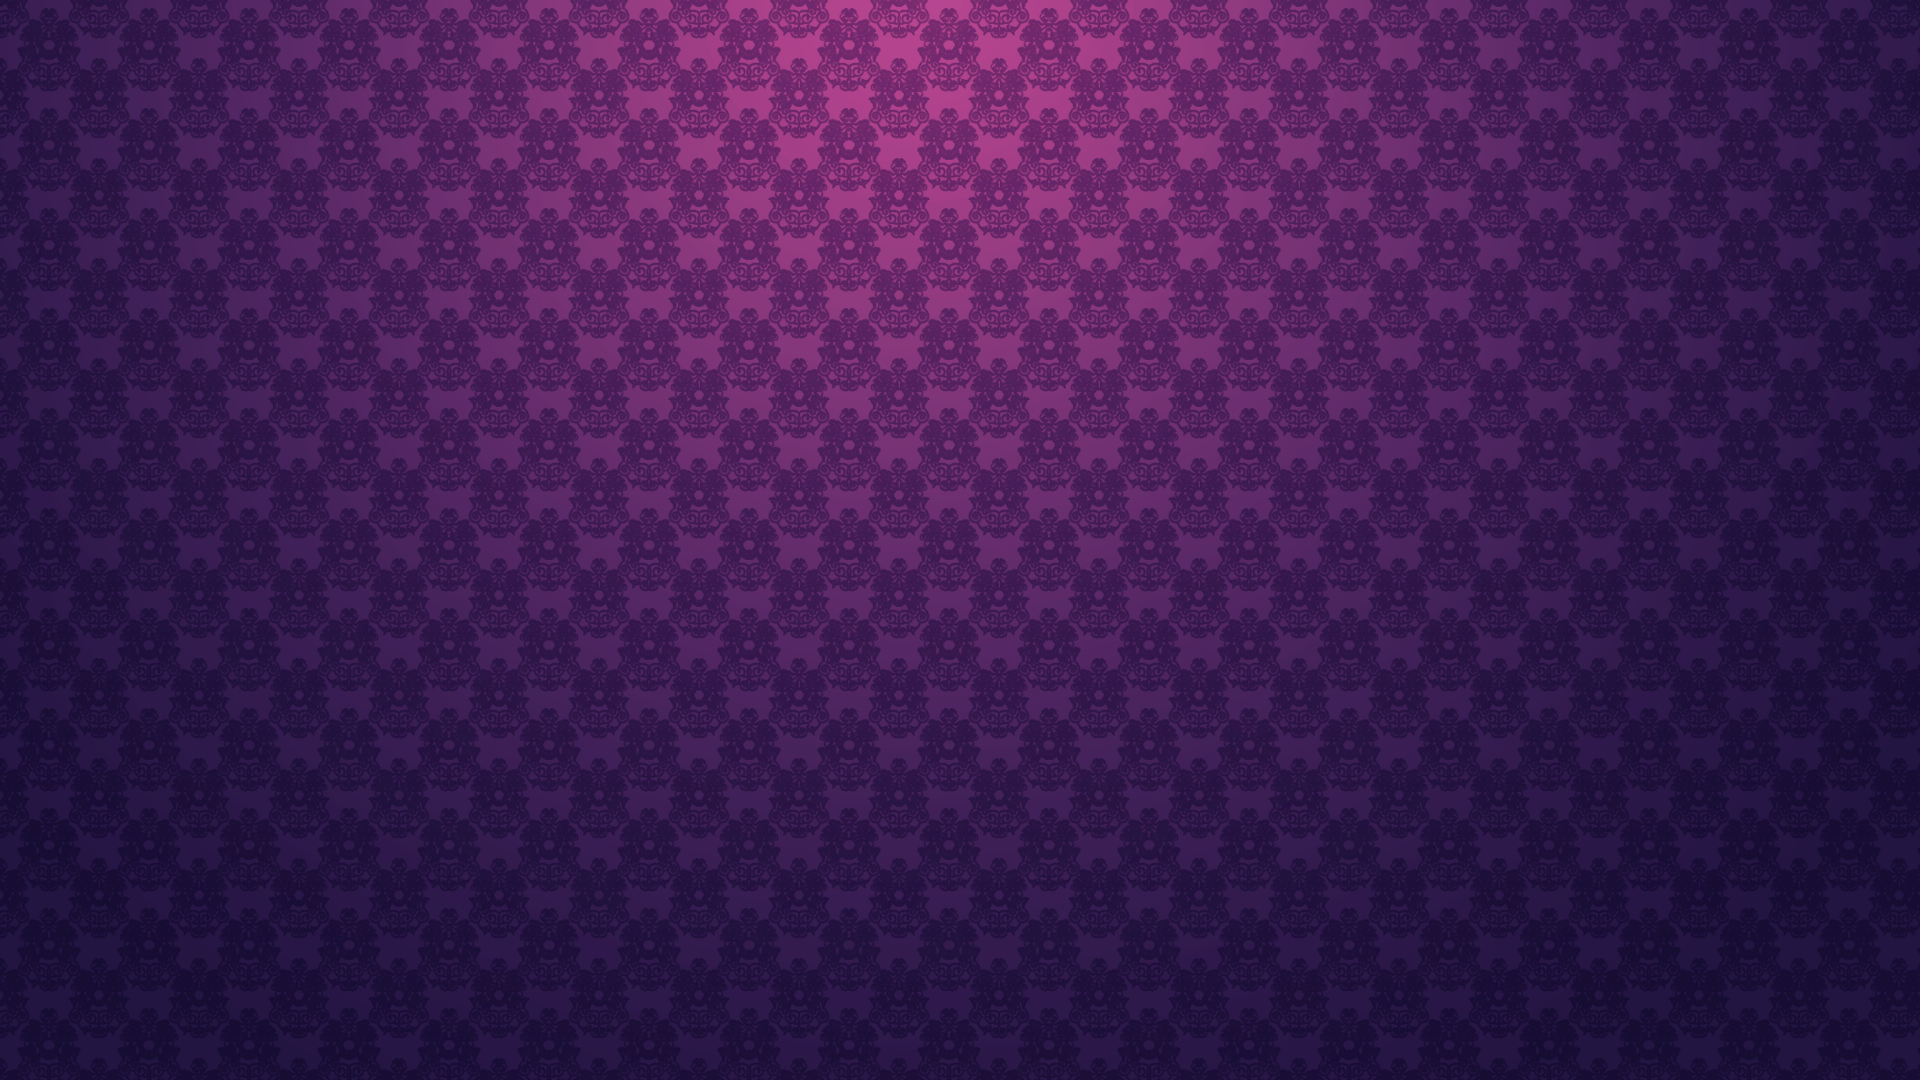 Download The Wallpapers From This Set Compiled Into A Zip File Here Abstract Wallpaper 101